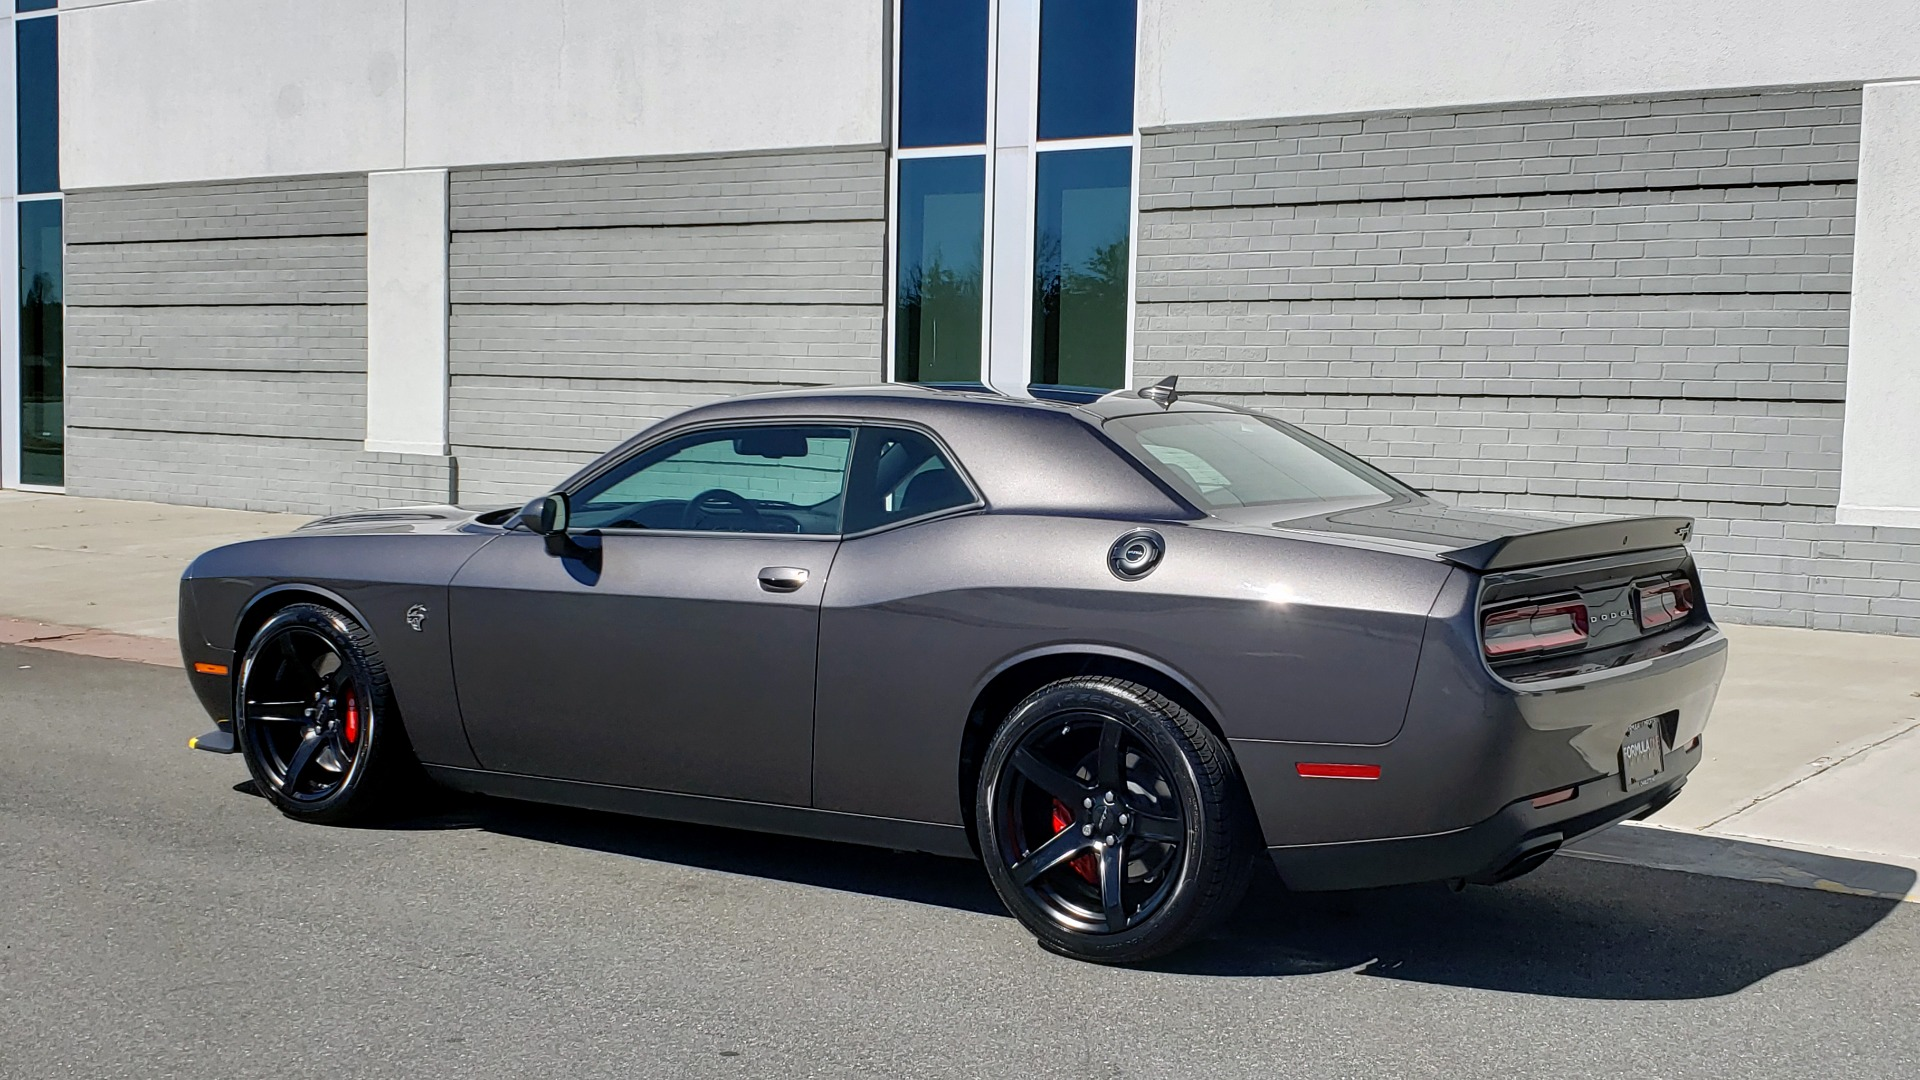 Used 2020 Dodge CHALLENGER SRT HELLCAT (717HP) / NAV / AUTO / CLOTH / REARVIEW / LOW MILES for sale $64,999 at Formula Imports in Charlotte NC 28227 5